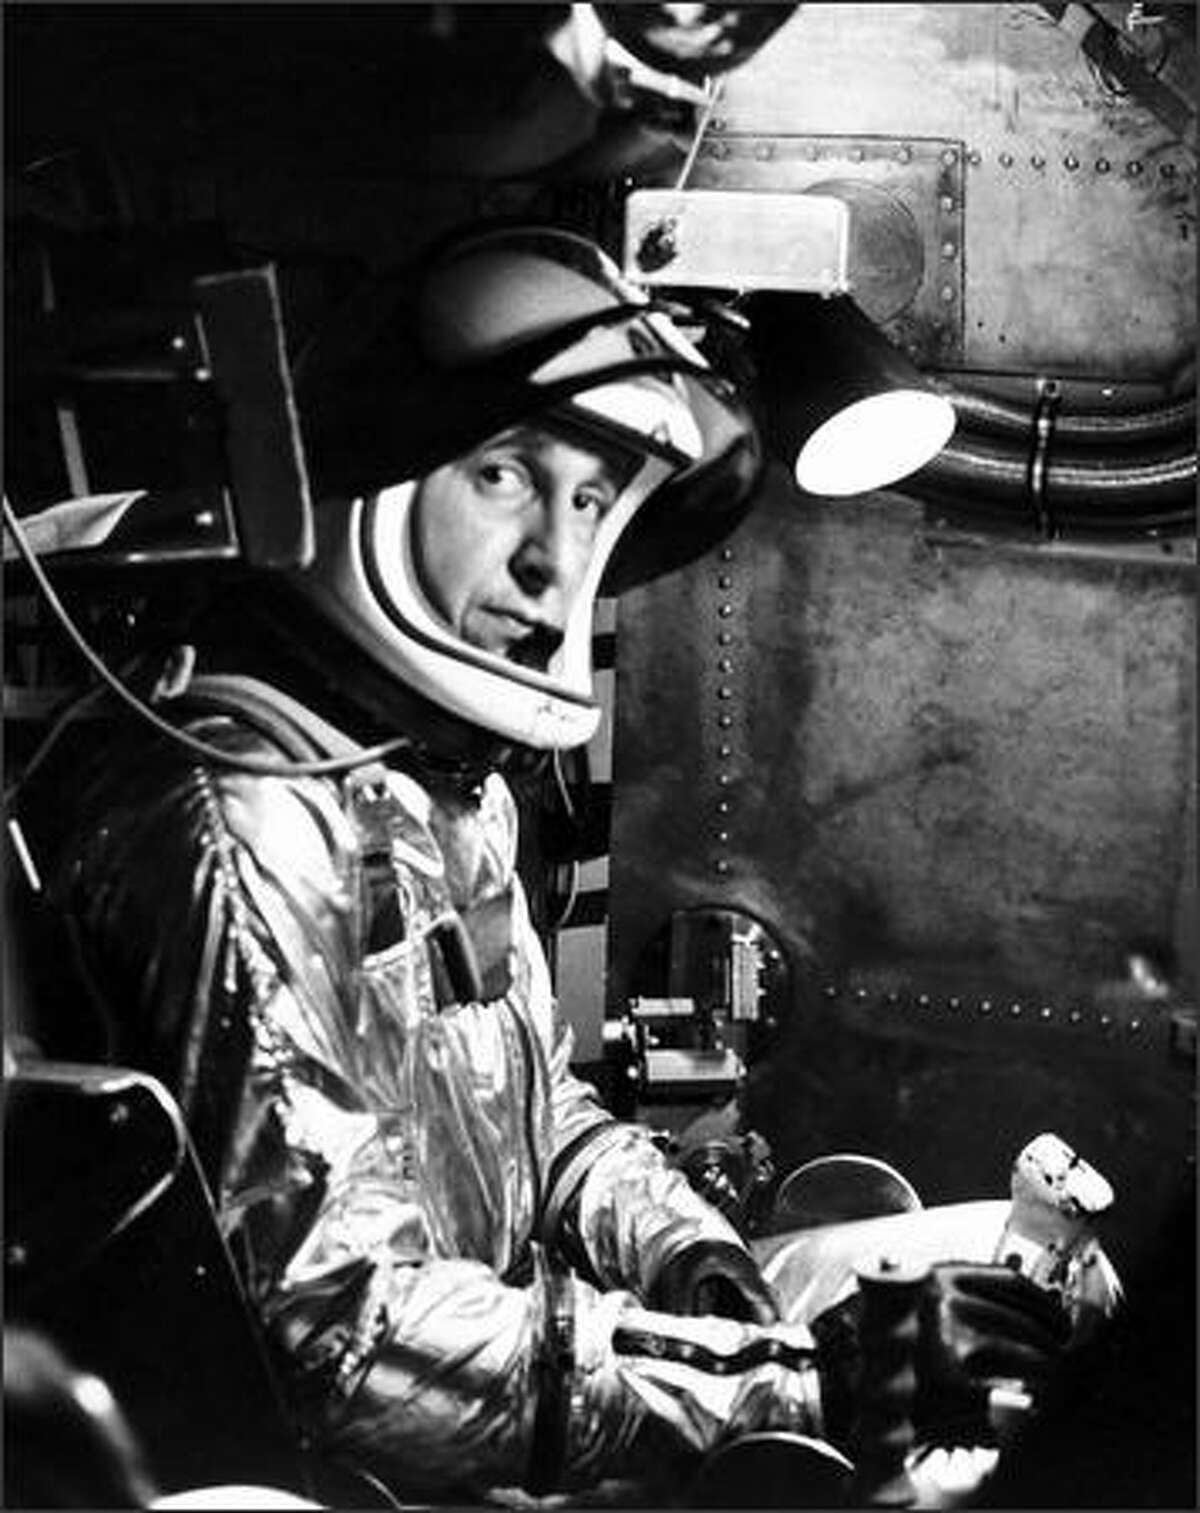 Test Pilot Scott Crossfield sits in a centrifuge machine which duplicates the stress of extreme acceleration encountered by jet pilots at high altitudes in this Feb. 28, 1958, file photo. Crossfield, the first person to fly at twice the speed of sound, was found dead Thursday in the wreckage of a single-engine plane in the mountains of northern Georgia.